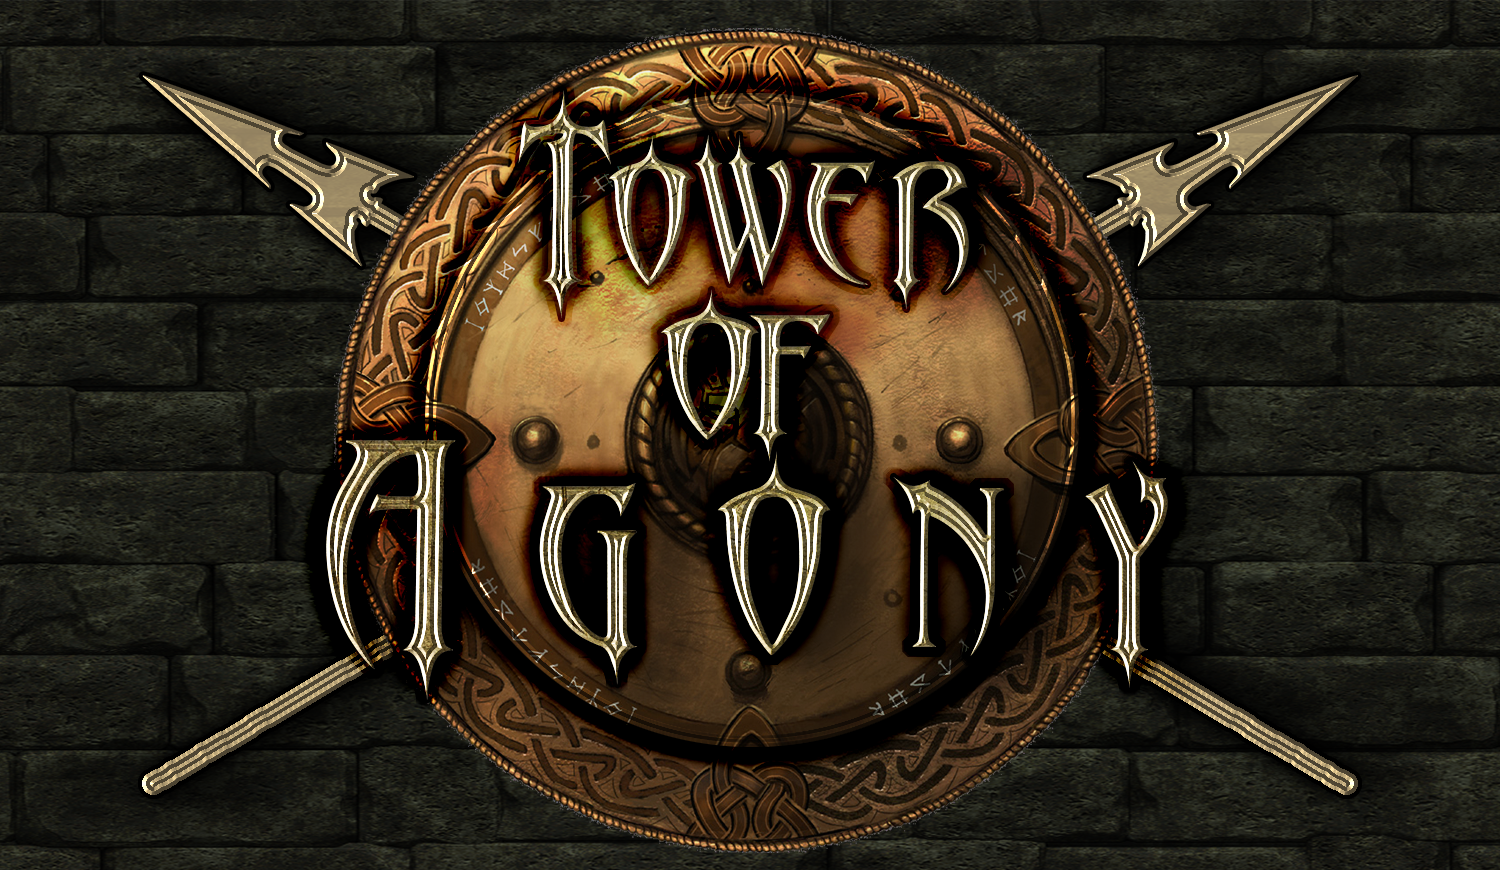 Tower of Agony